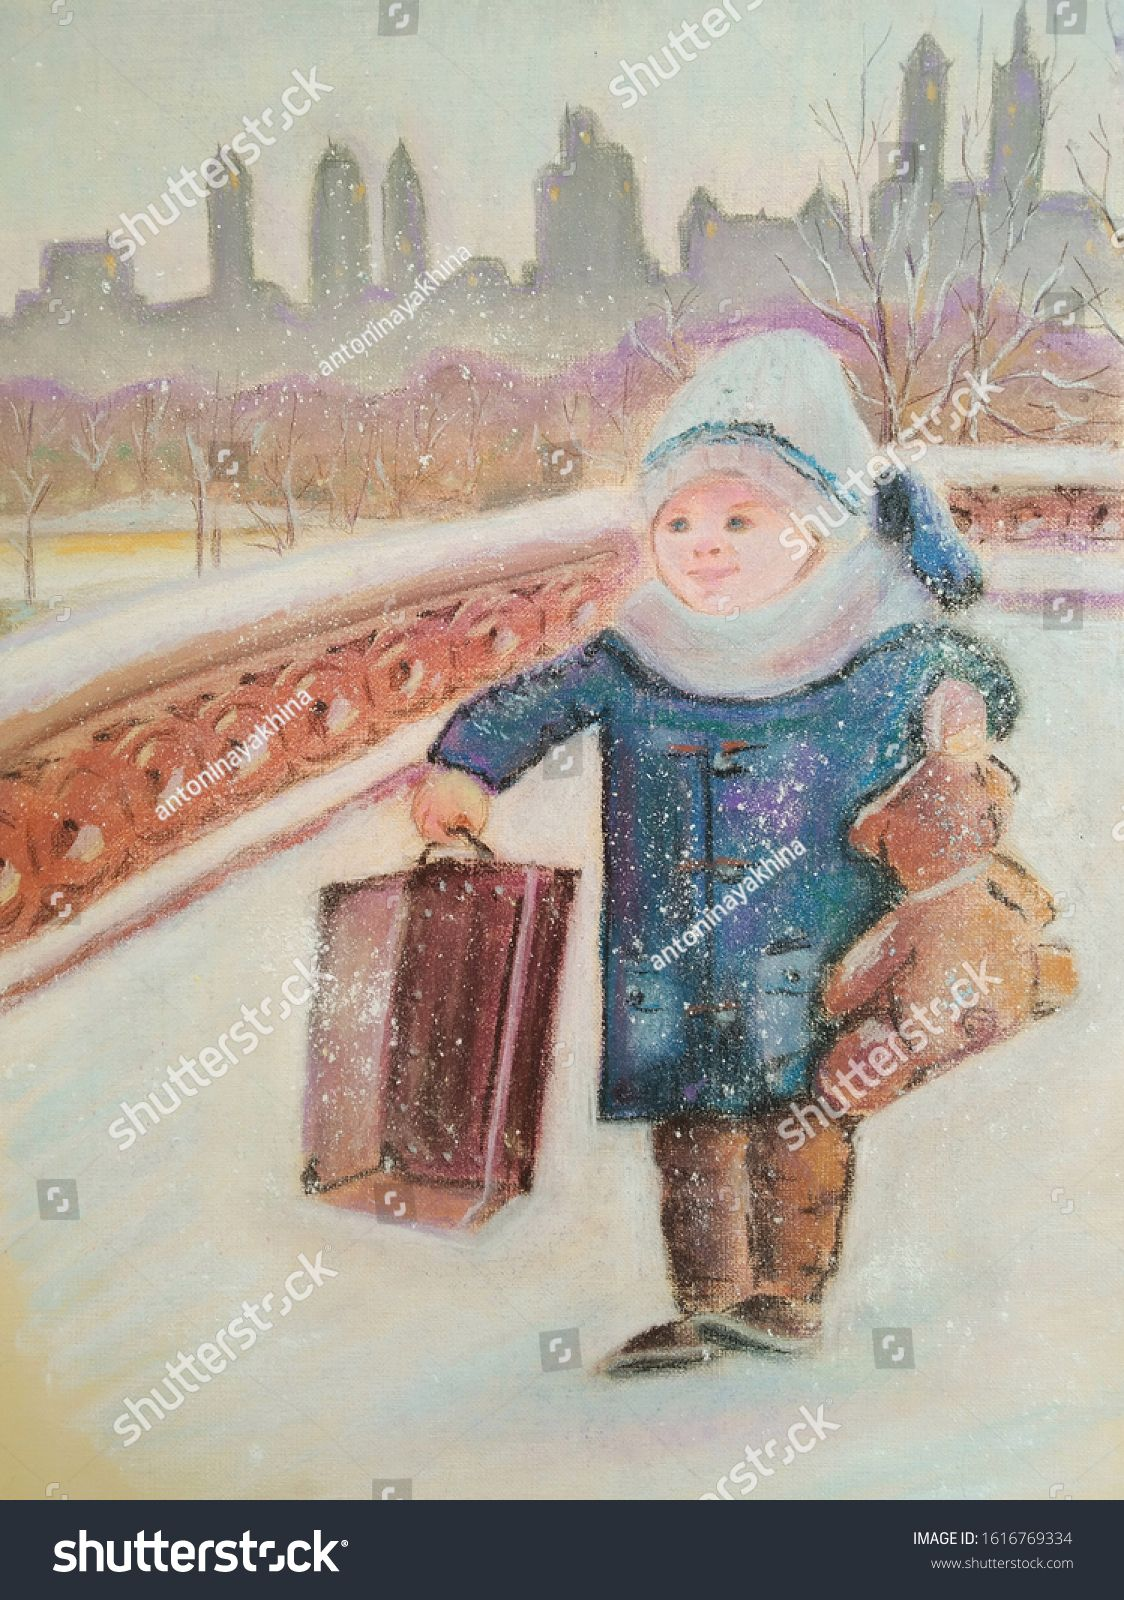 \nthe pastel illustration depicts a little boy who with a suitcase and a bear on a winter day walks in the central park of New York #Sponsored , #Sponsored, #depicts#boy#suitcase#nthe